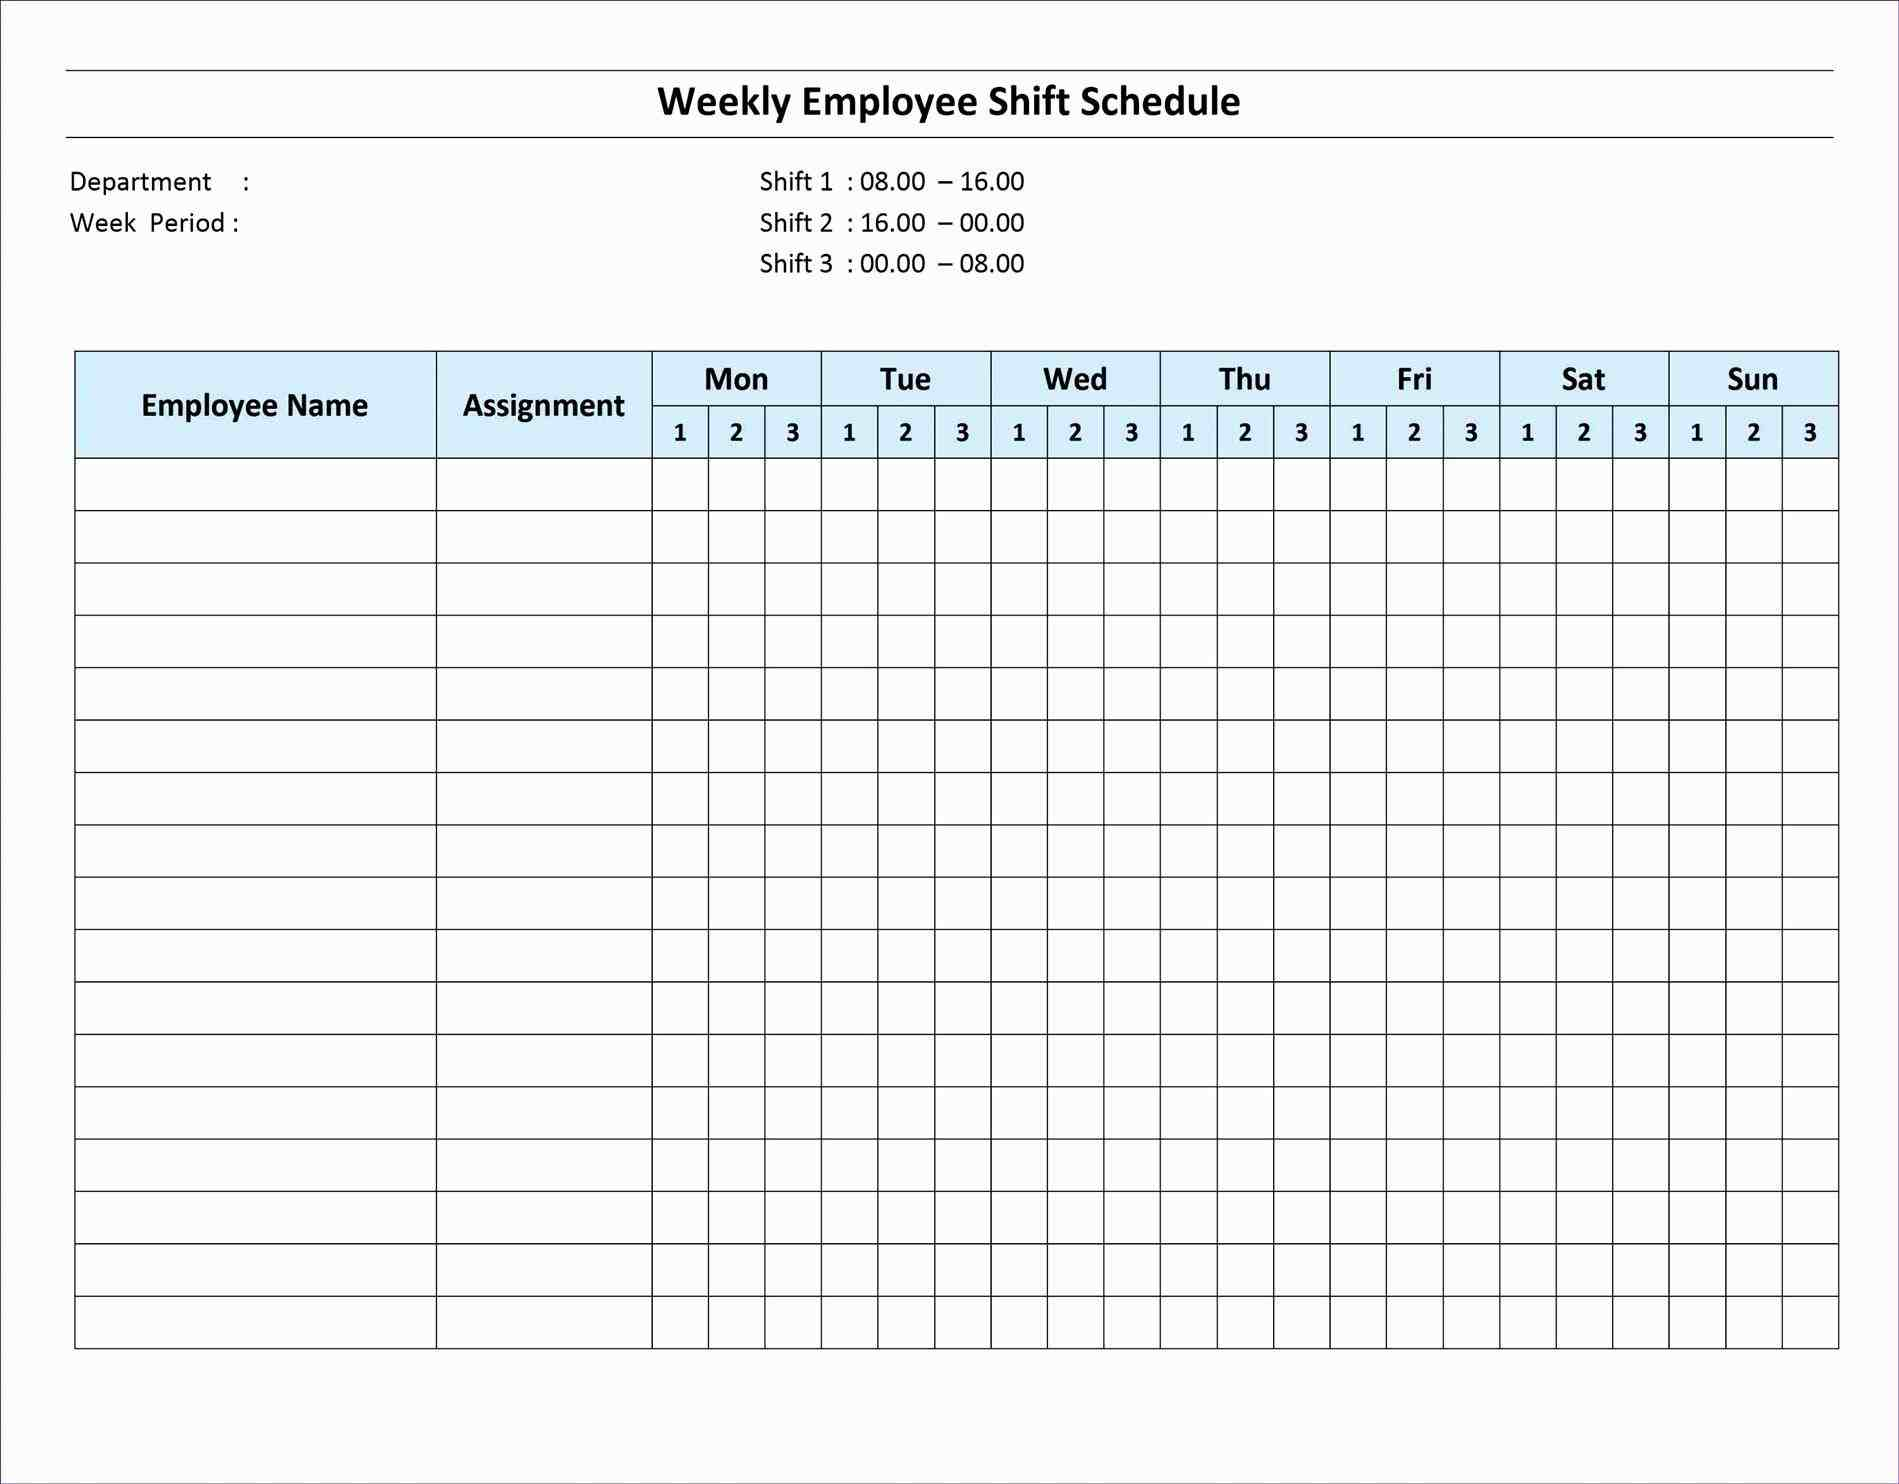 Employee Performance Review Template Excel performance review template excel cufhs unique free rhexceltemplateus evaluation form work rhpinterestcom free Employee Performance Review